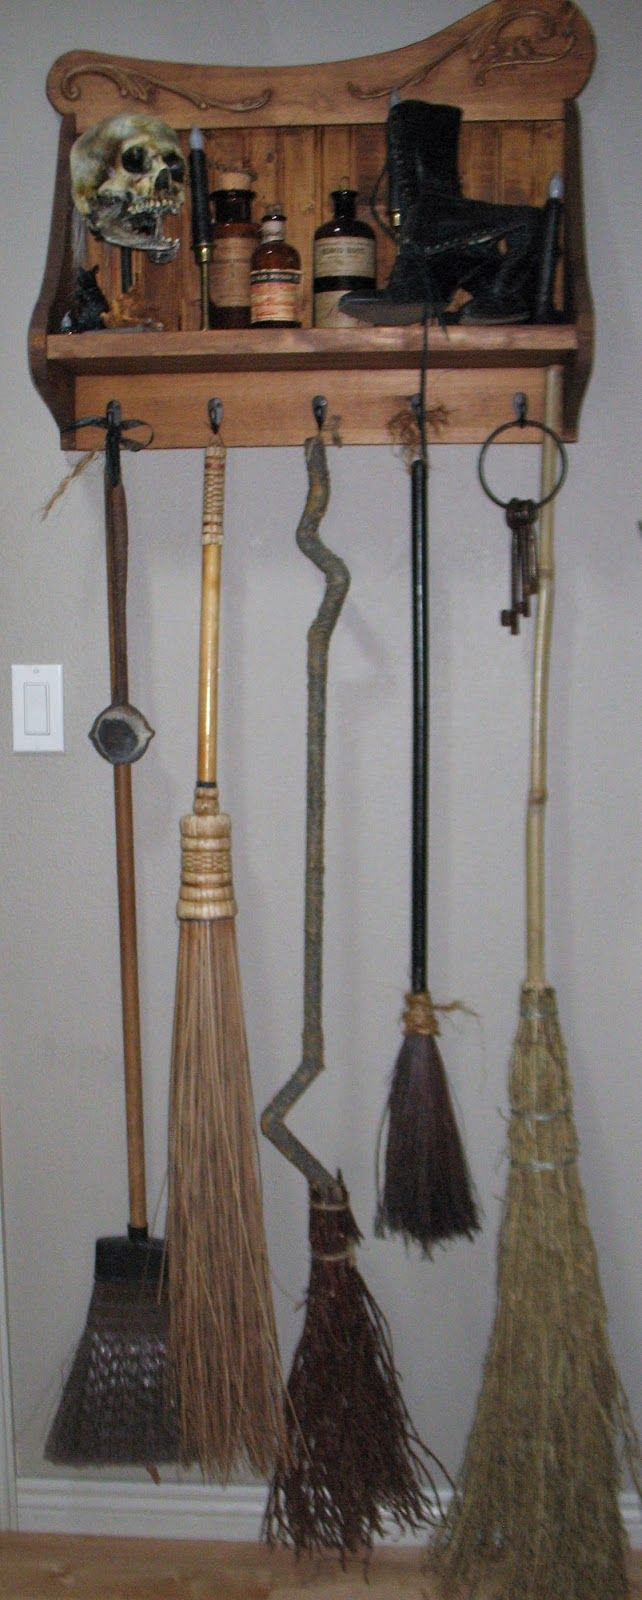 Warts and all...: Full-size broom vs sub-compact broom....